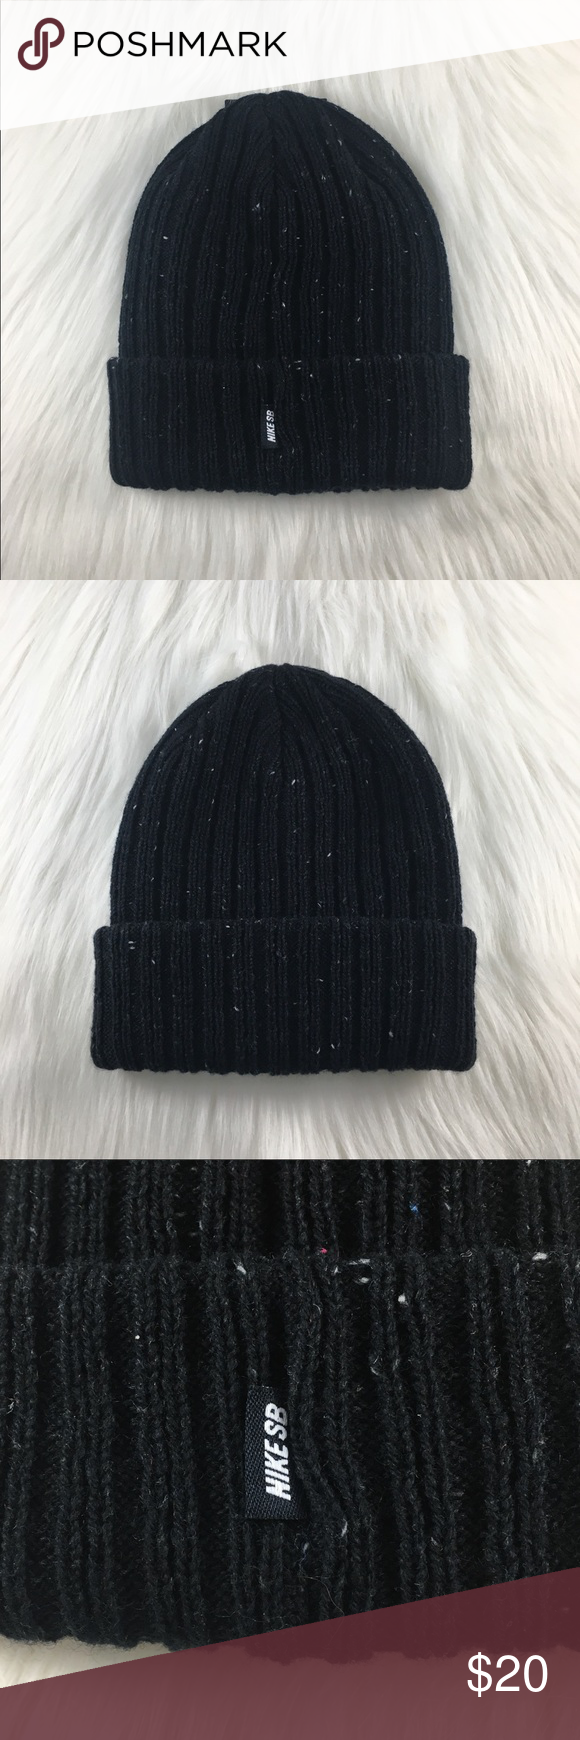 the best attitude 7e0f1 87aaa Nike SB Surplus Black Beanie Nike SB Surplus Black Beanie features soft  blended fabric and a cuffed design for warm, comfortable coverage.